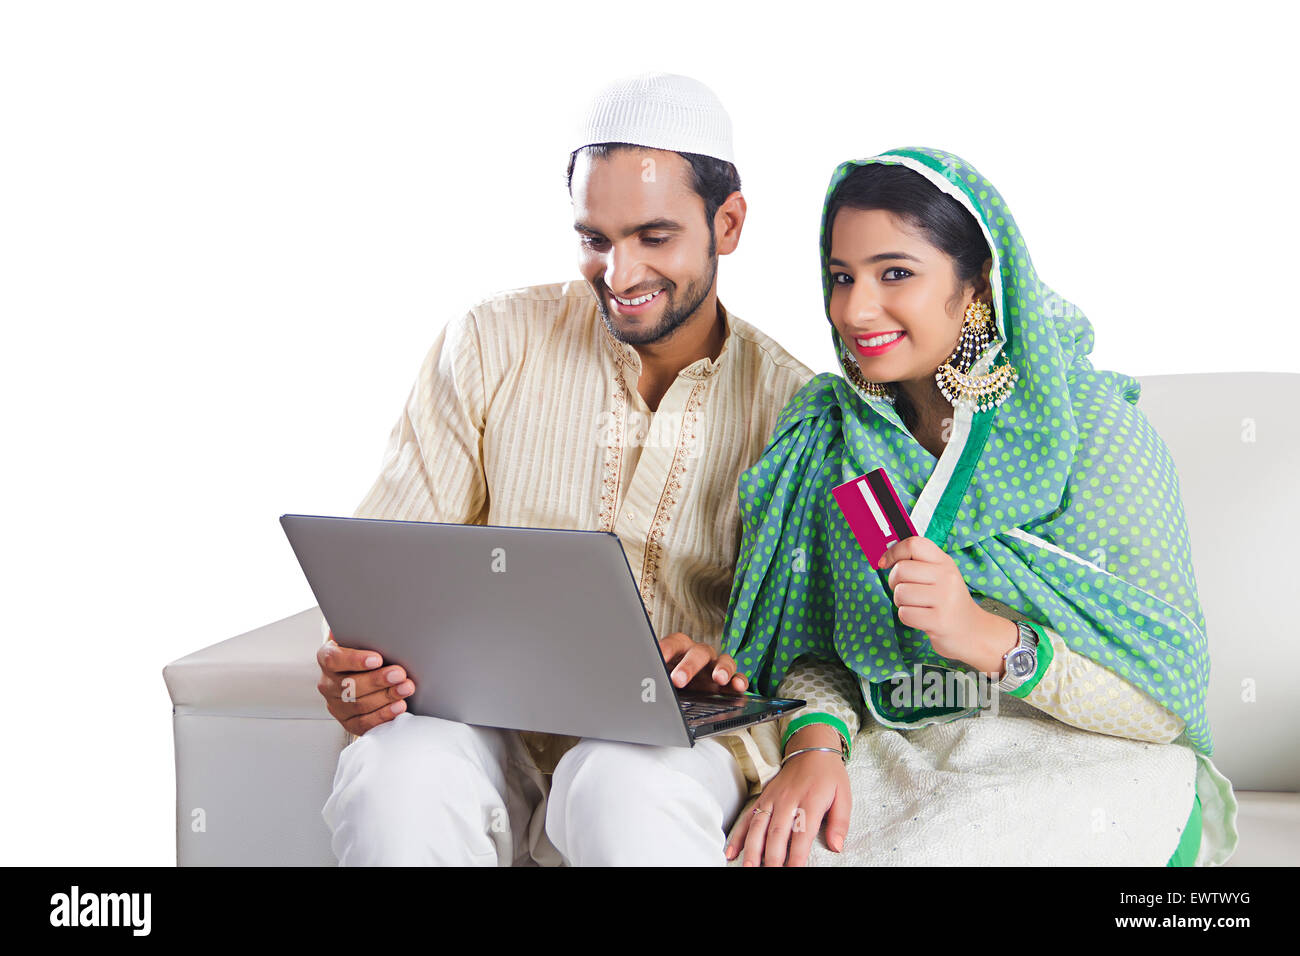 2 indian Muslim Married Couple laptop Credit Card shopping - Stock Image